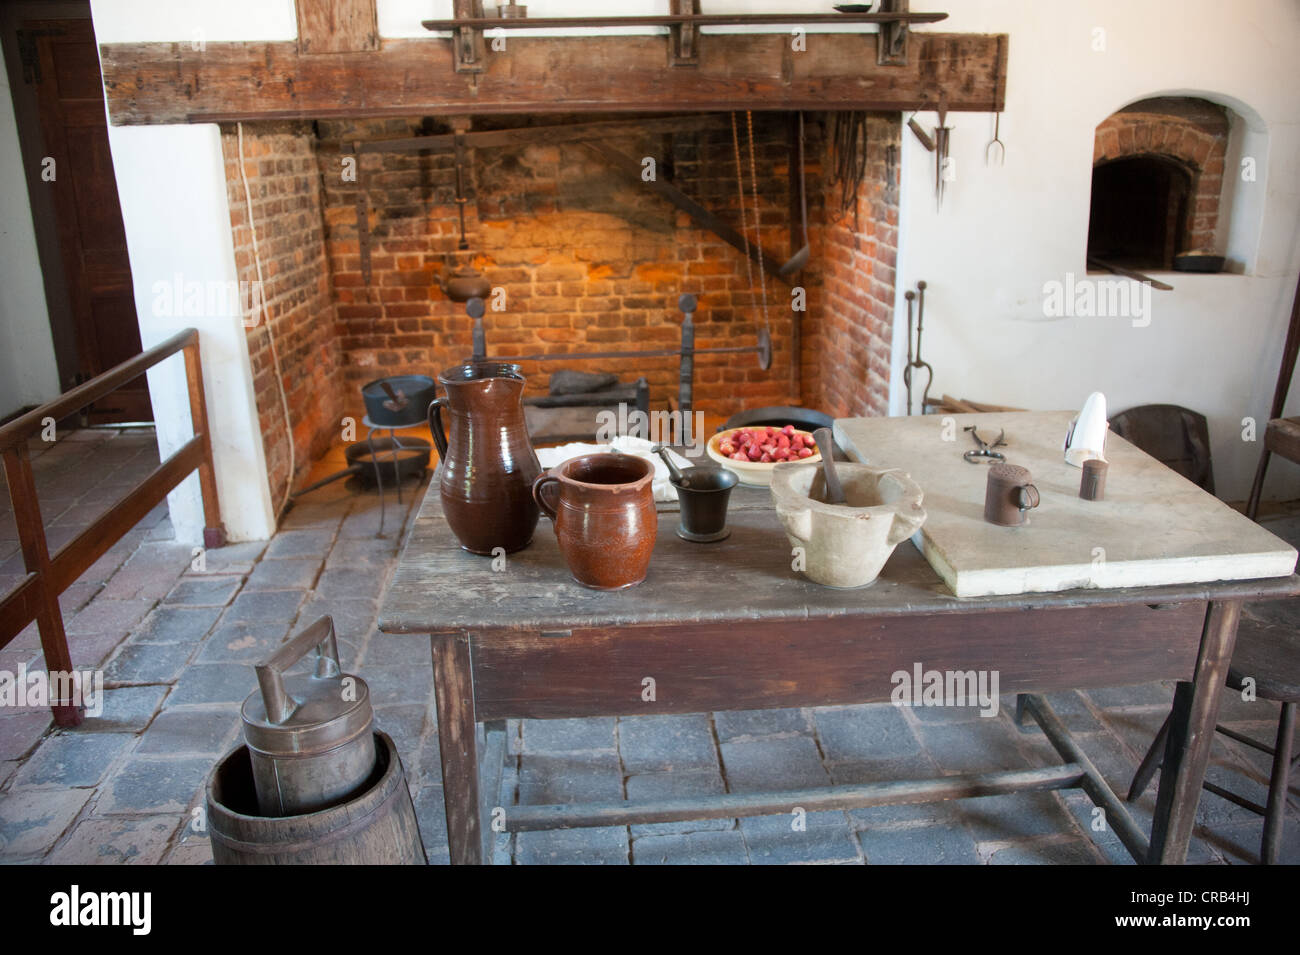 Pioneer style kitchen with brick oven and table with jars and pots Stock Photo